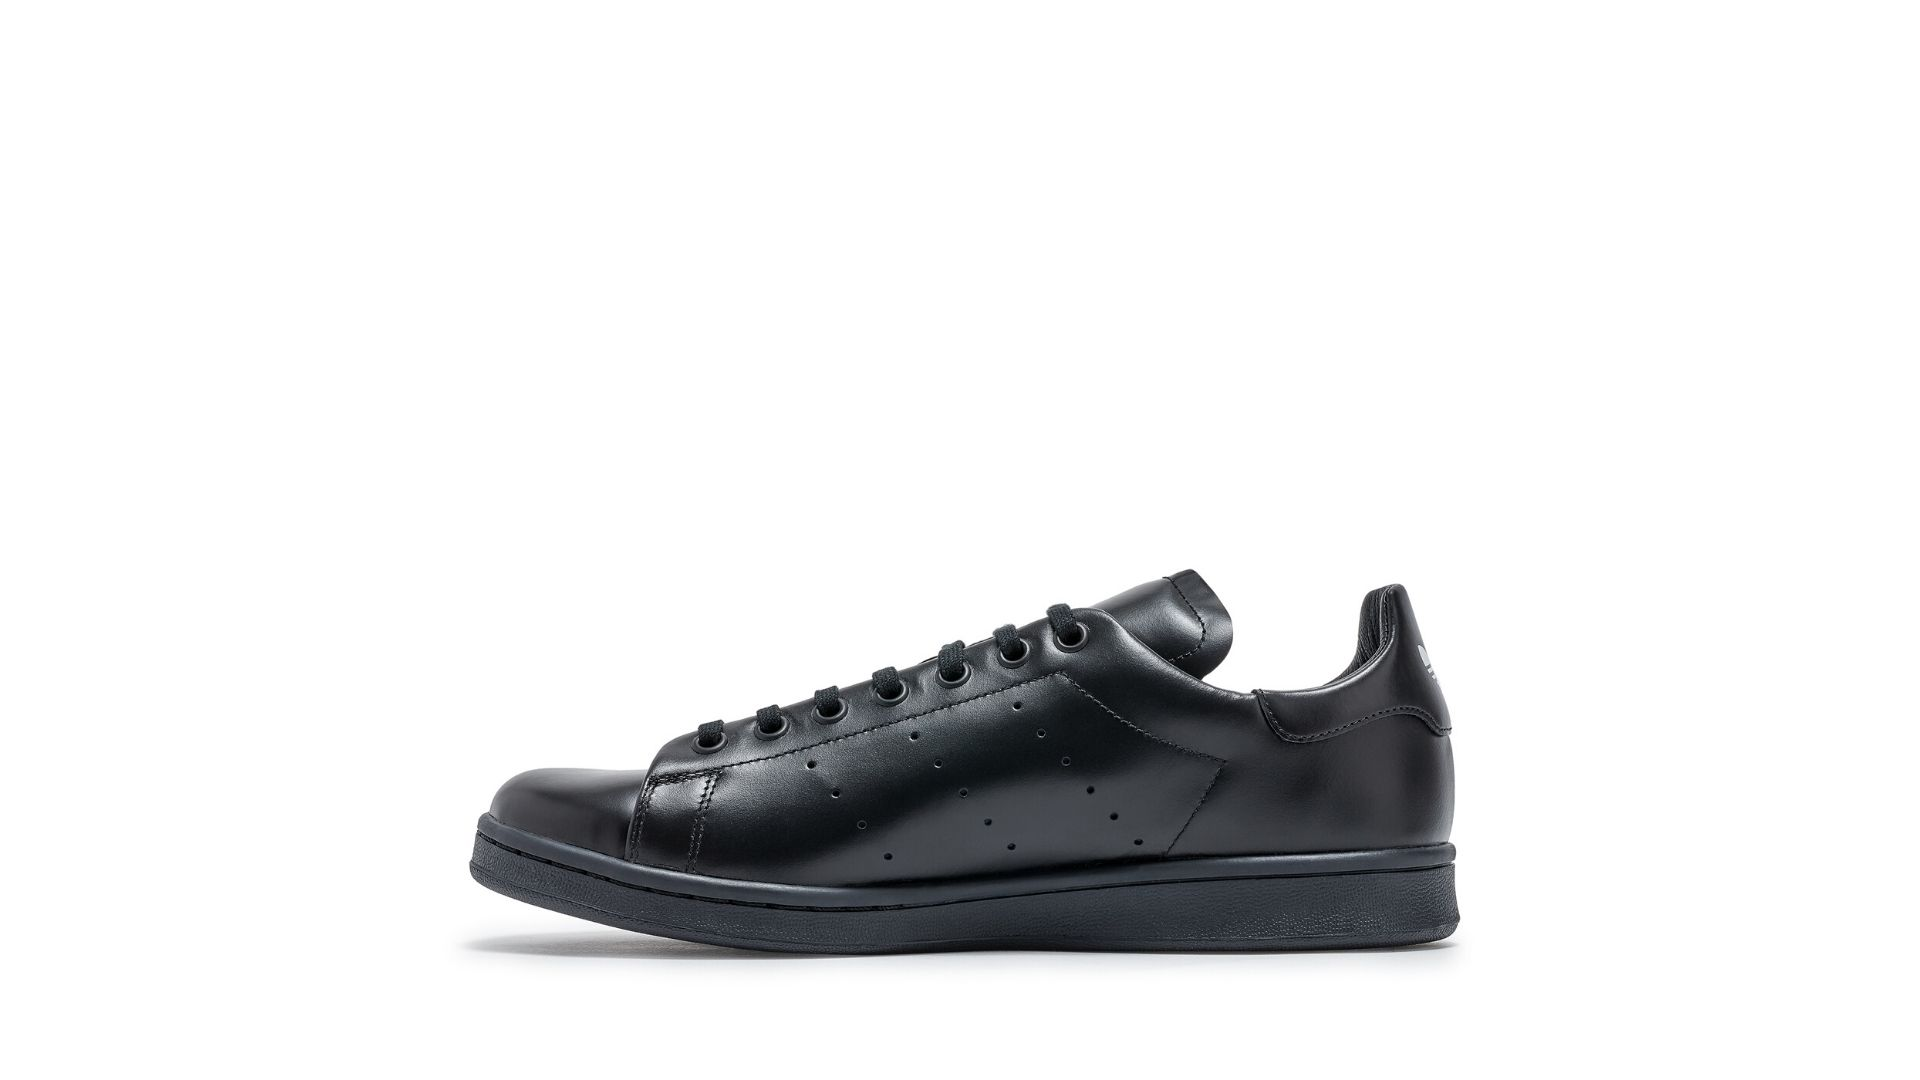 Dover Street Market, Adidas, collaboration, exclusive, fashion, menswear, style, sneakers, esquire, 2020